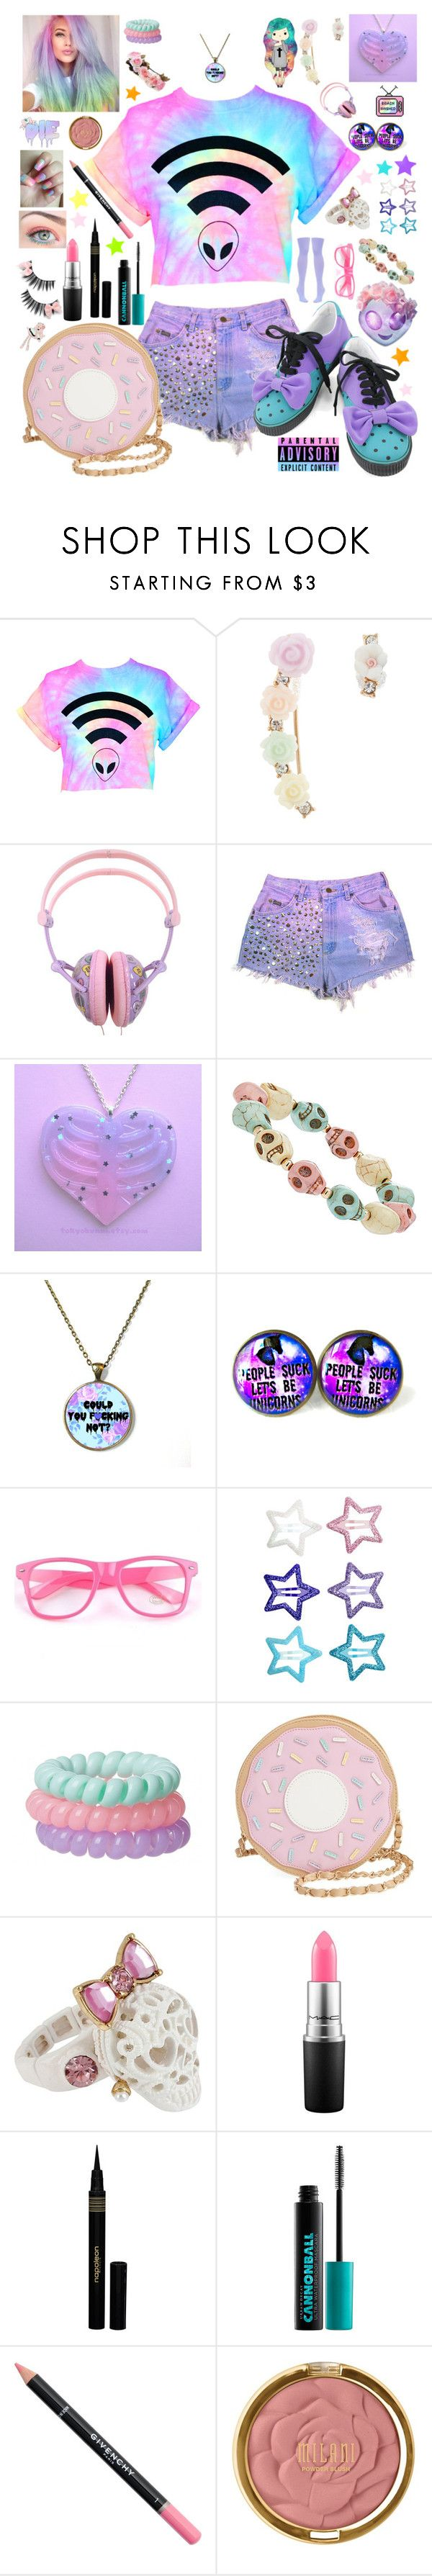 """""""How To Be A Pastel Goth """" by aspiretoinspire22 ❤ liked on Polyvore featuring Monsoon, Dorothy Perkins, H&M, Betsey Johnson, MAC Cosmetics, Napoleon Perdis, Urban Decay, Givenchy, Milani and Dolce&Gabbana"""